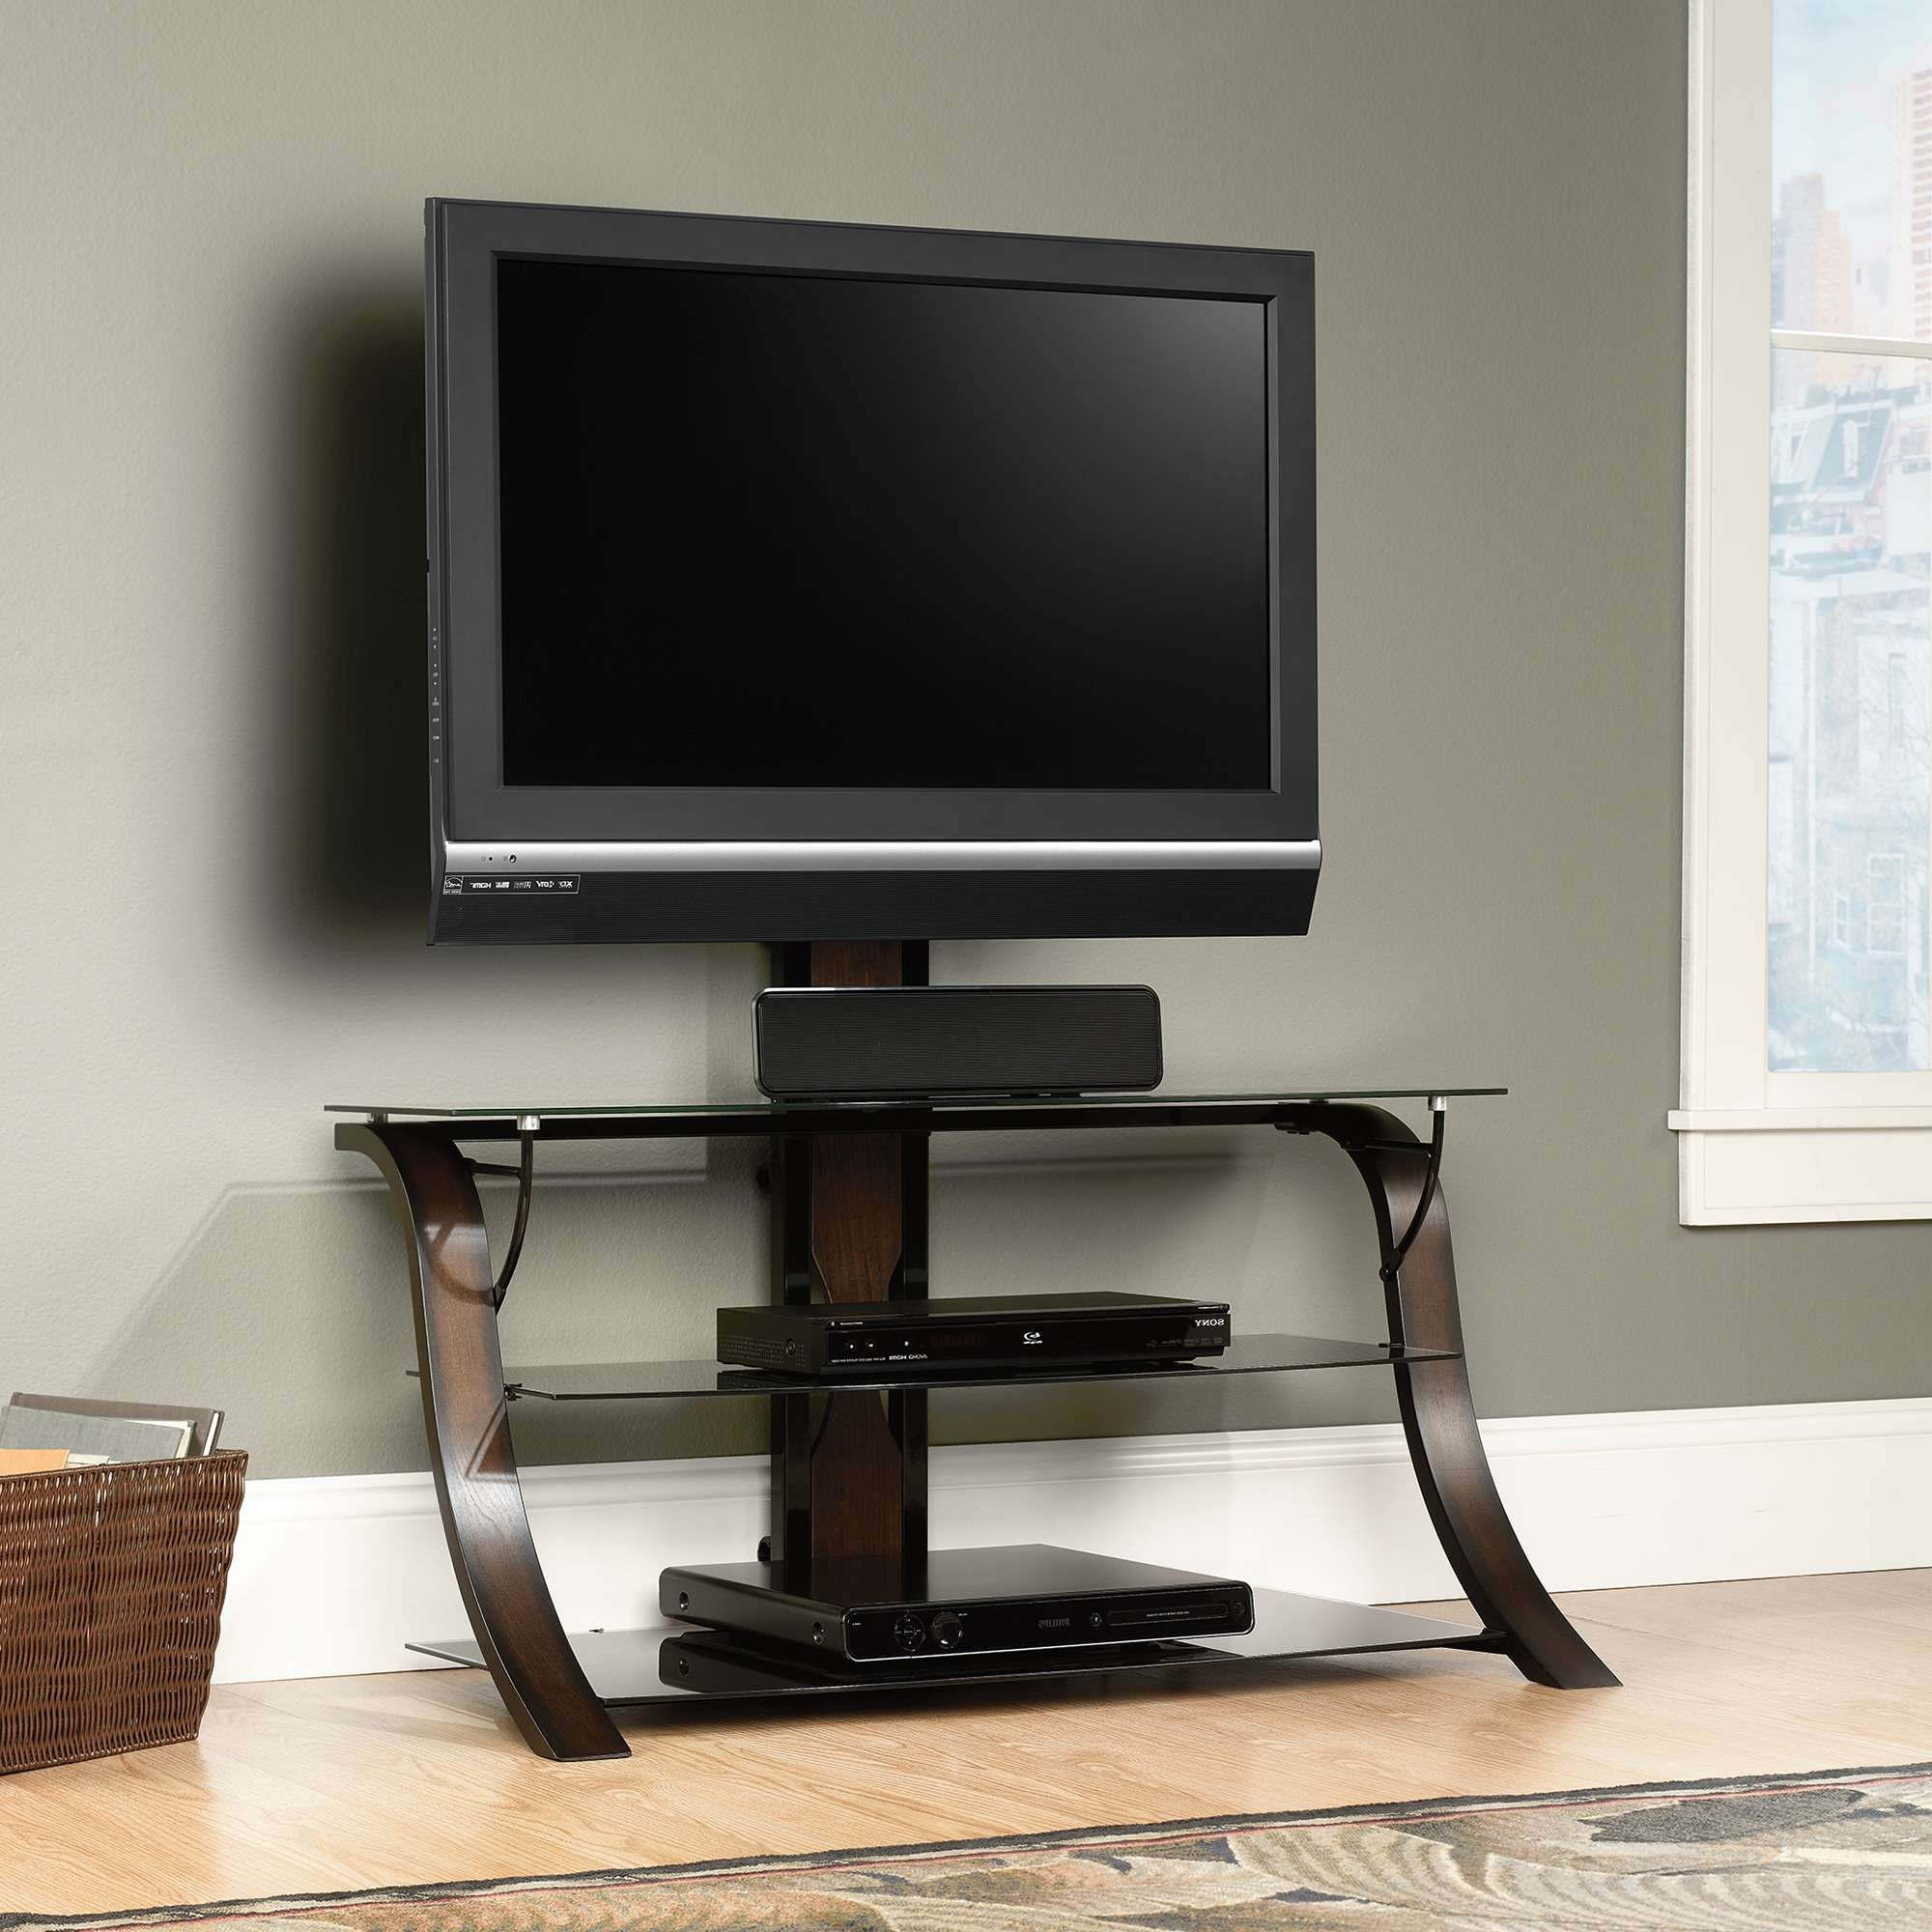 Swanky Tv Stands Ideas Rustic Tv Stands Home Design Ideas To In Unique Tv Stands For Flat Screens (View 7 of 20)